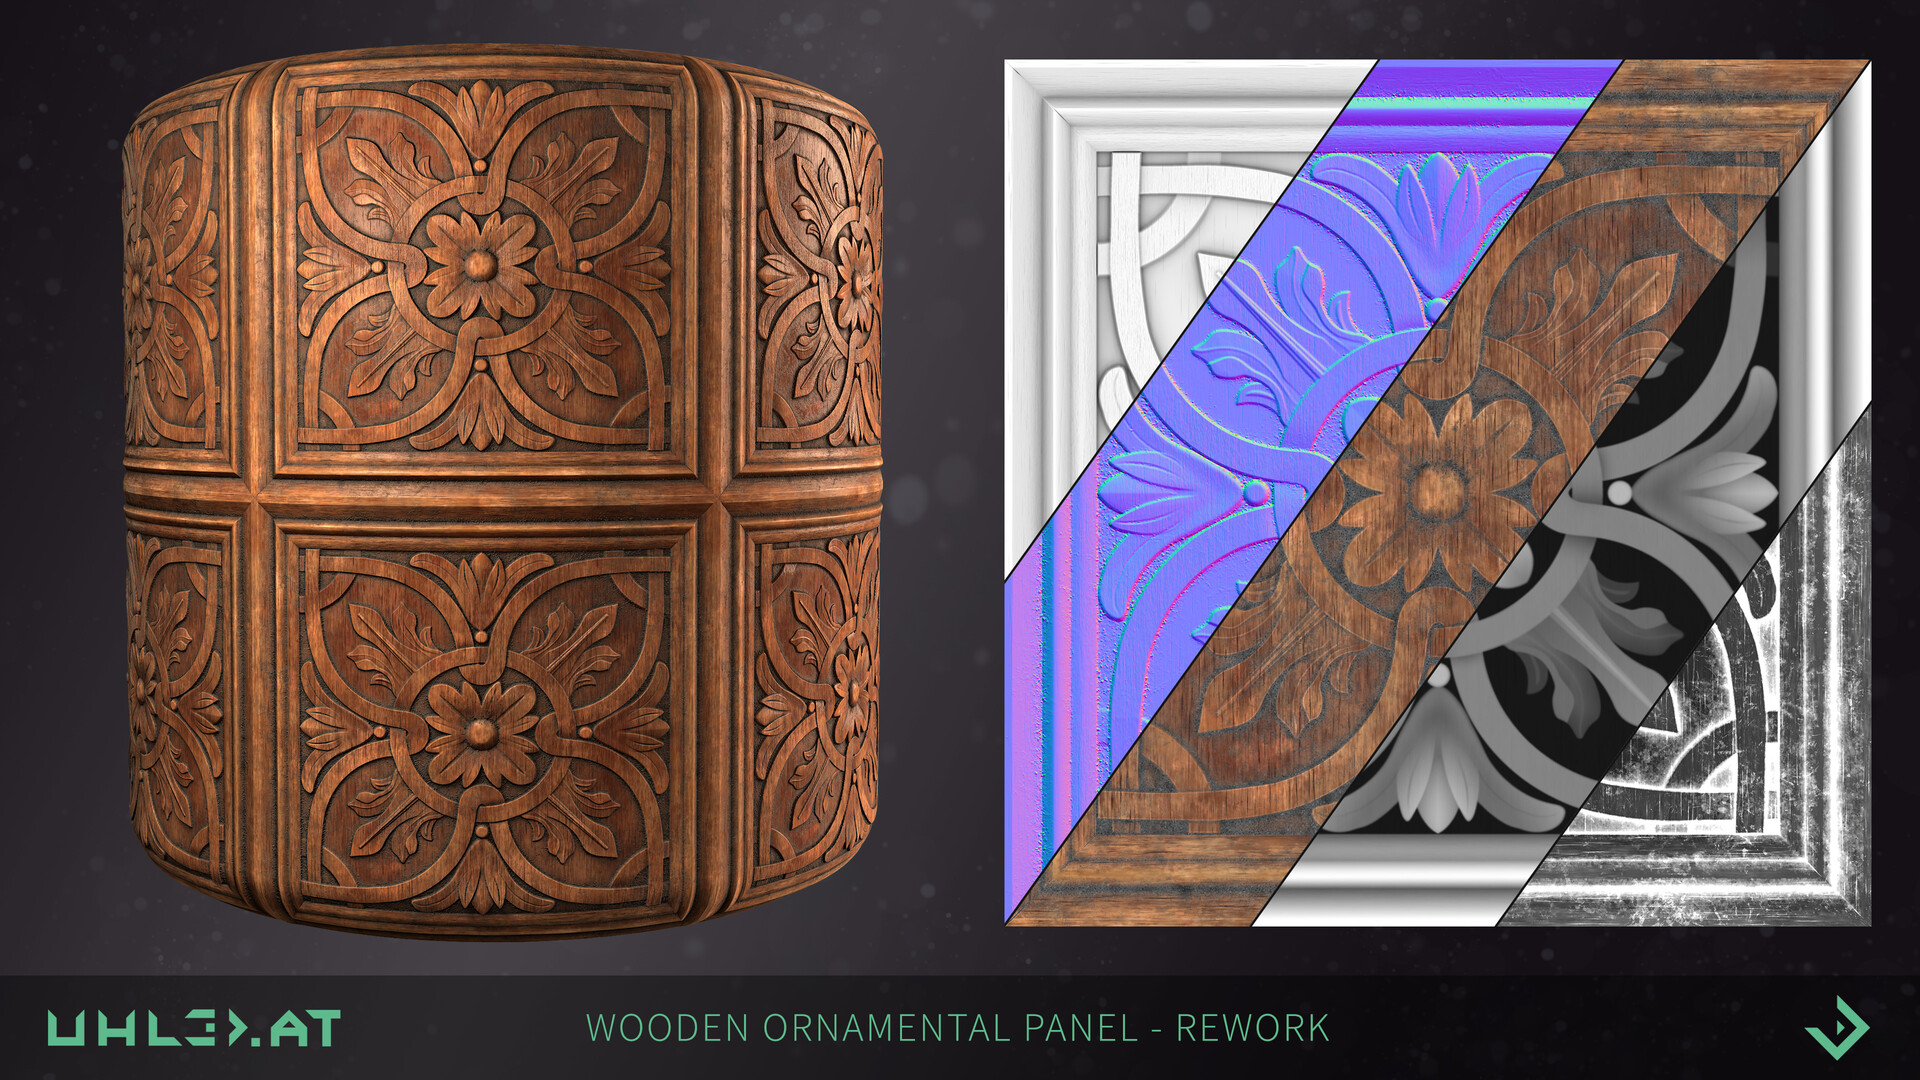 Dominik uhl wood panel ornament rework 05